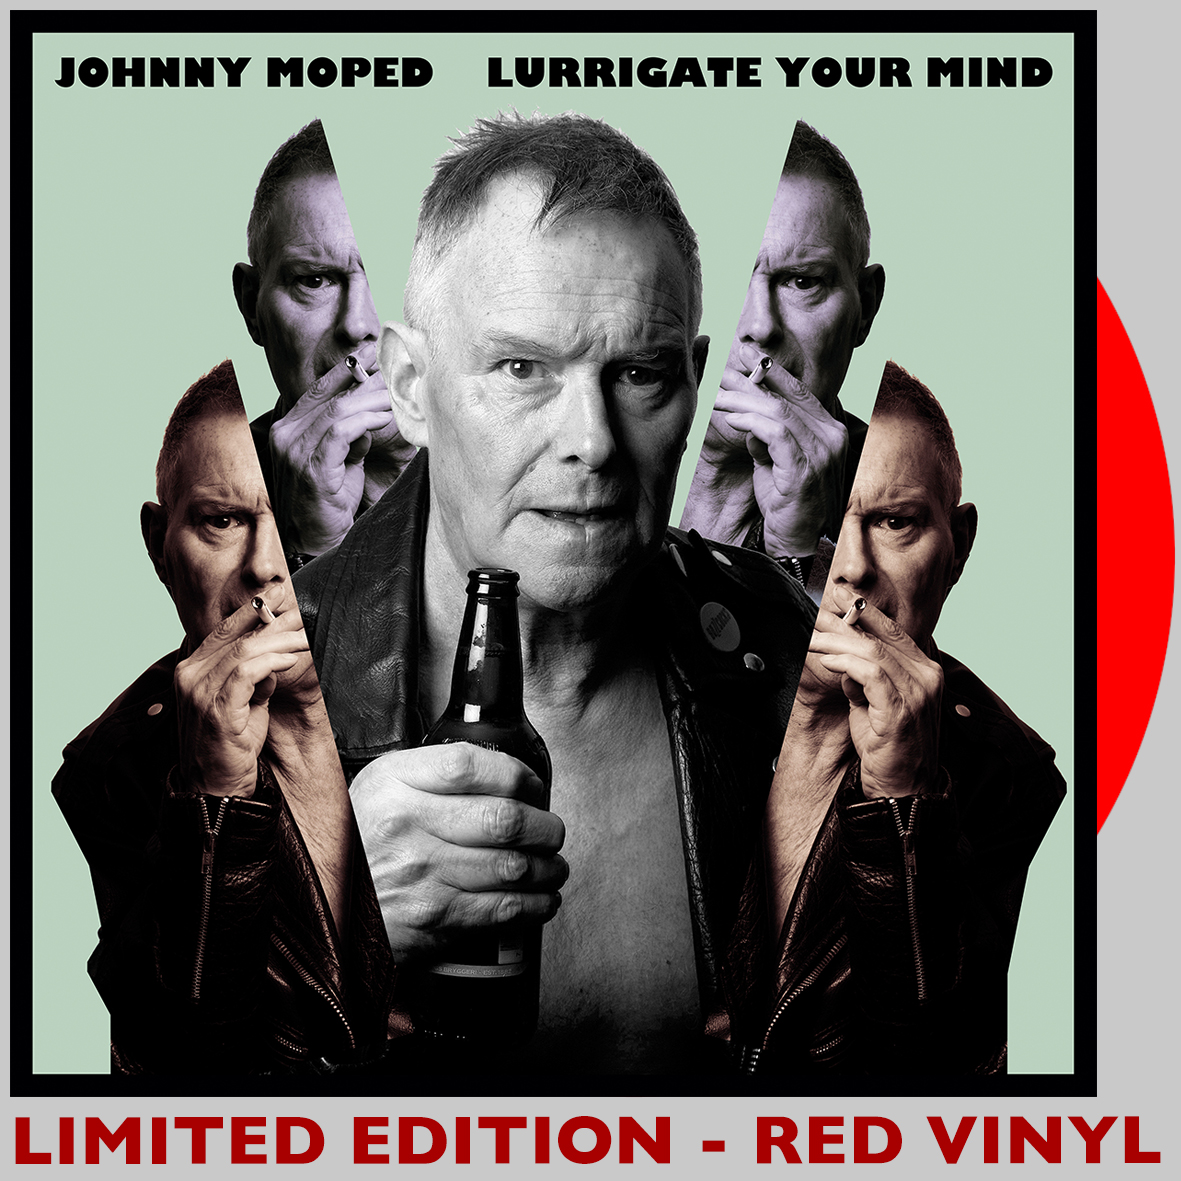 Johnny Moped - Lurrigate Your Mind - RED VINYL LP